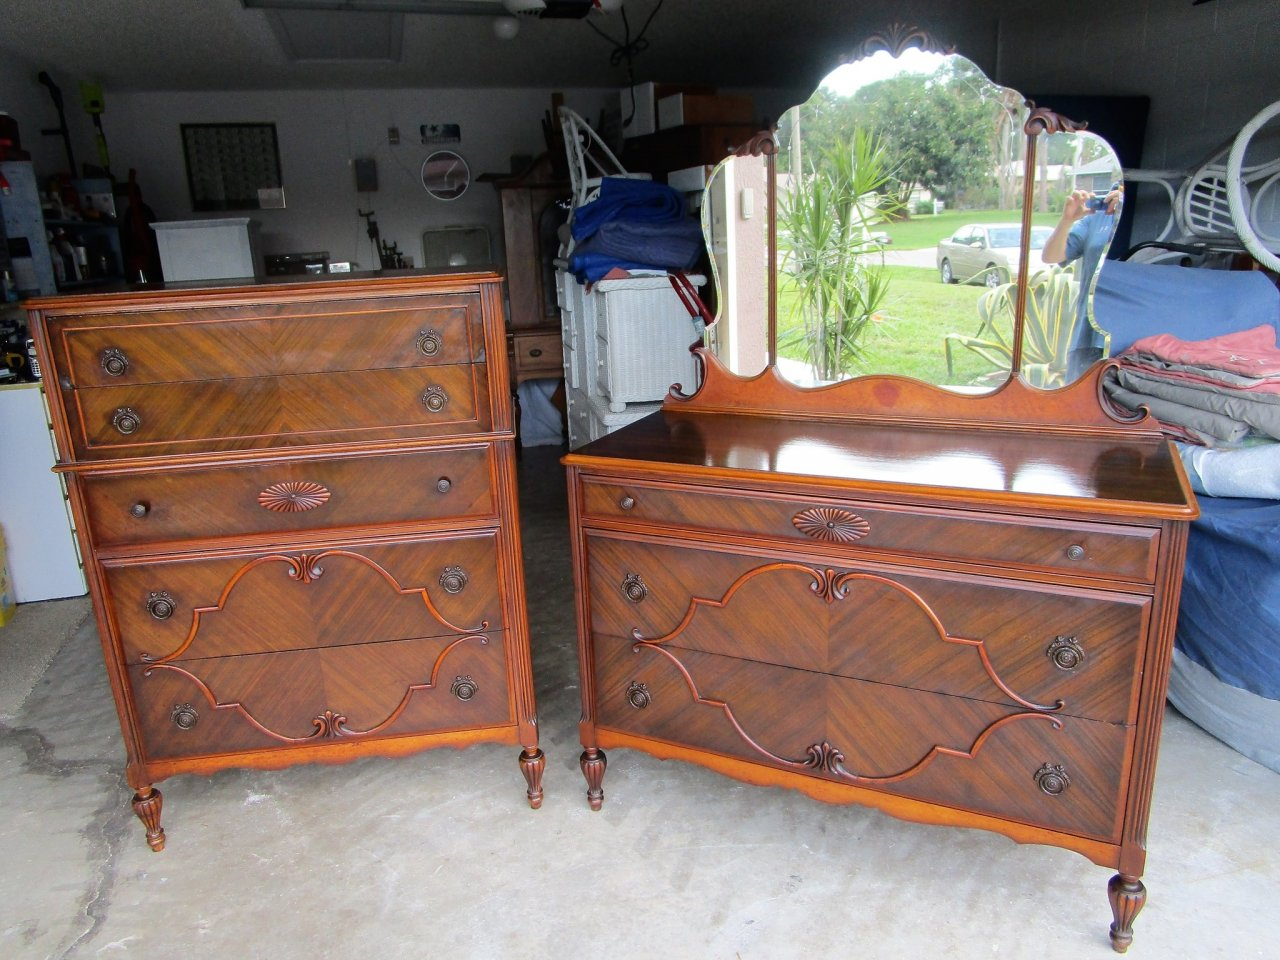 What Is The Value Of This T.C.F. Co. Dresser With Mirror And Chest Of Drawe.